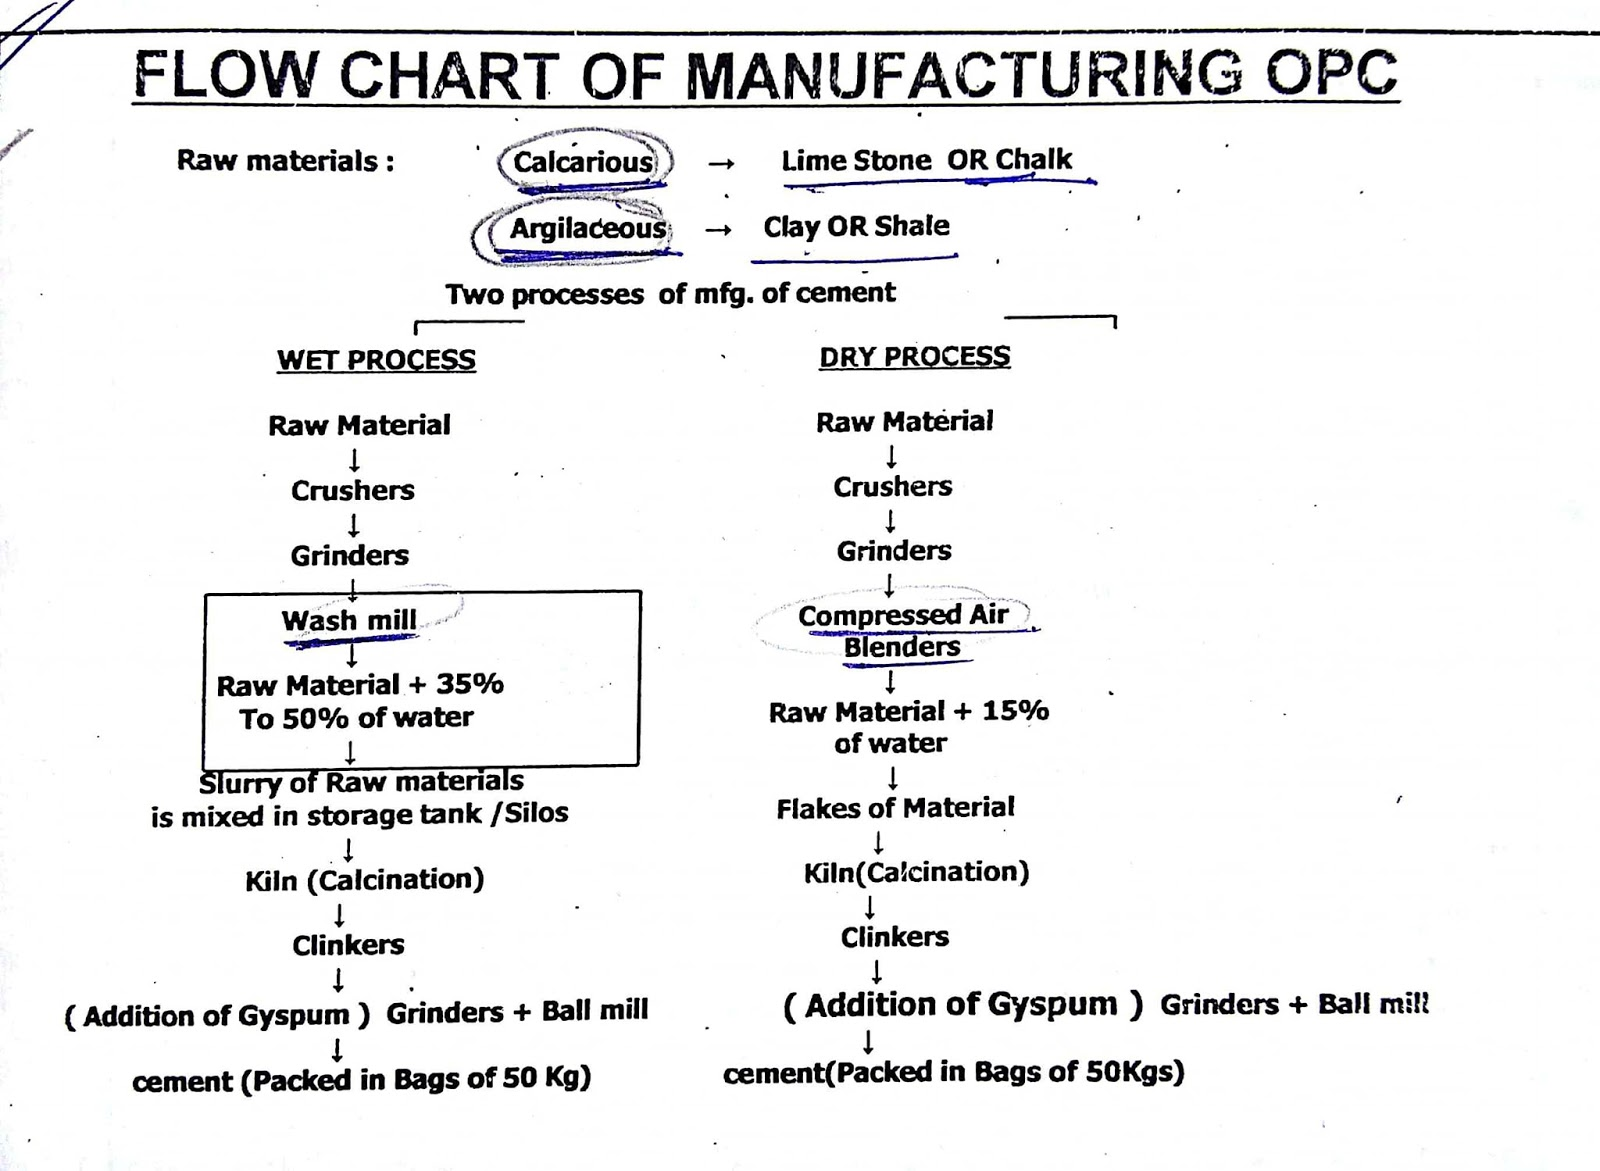 Civil At Work Flow Chart Of Manufacturing Opc